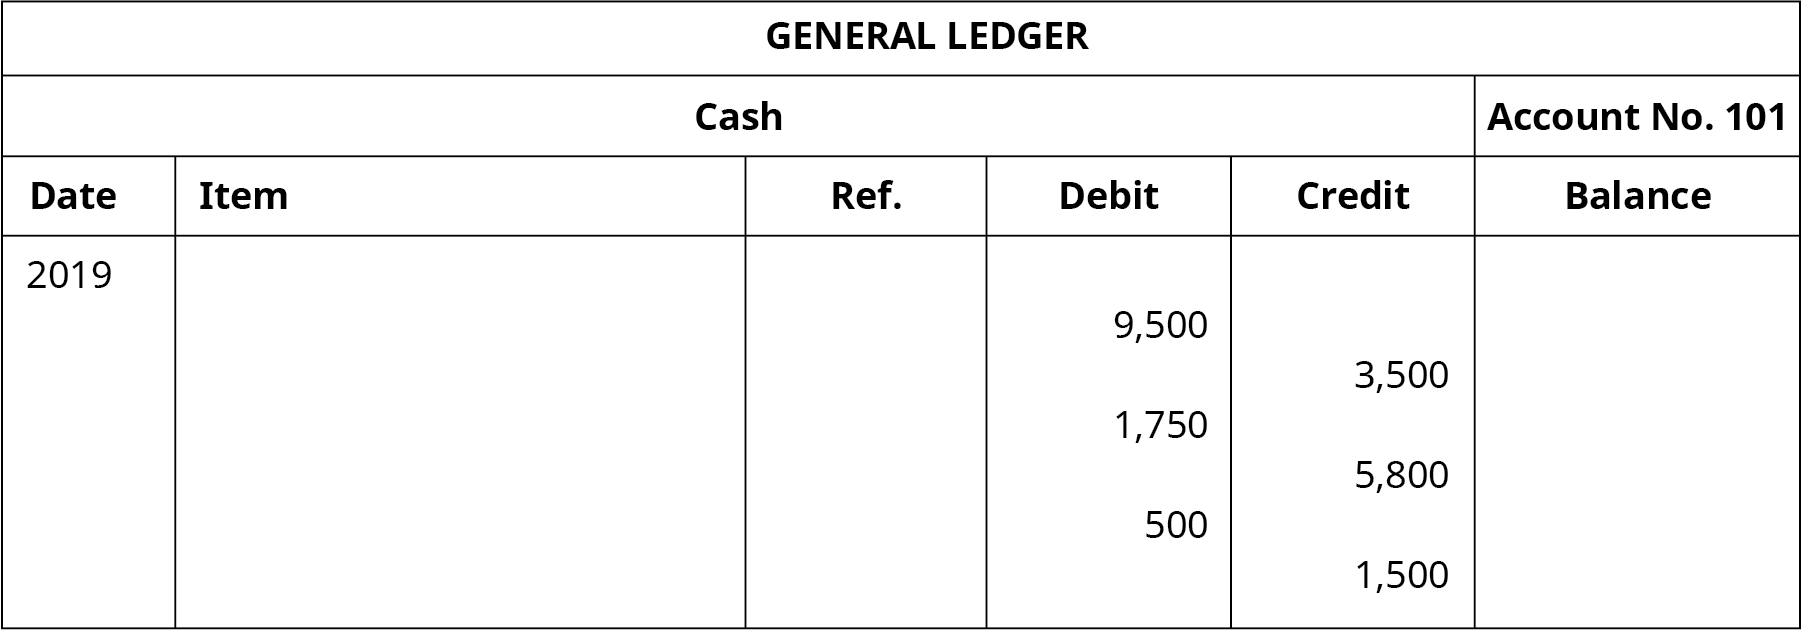 """A General Ledger titled """"Cash Account No. 101"""" with six columns. Date: 2019. Six columns labeled left to right: Date, Item, Reference, Debit, Credit, Balance. Debit: 9,500; Balance: 9,500. Credit: 3,500; Balance: 6,000. Debit: 1,750; Balance: 7,750. Credit: 5,800; Balance: 1,950. Debit: 500; Balance: 2,450. Credit: 1,500; Balance: 950."""